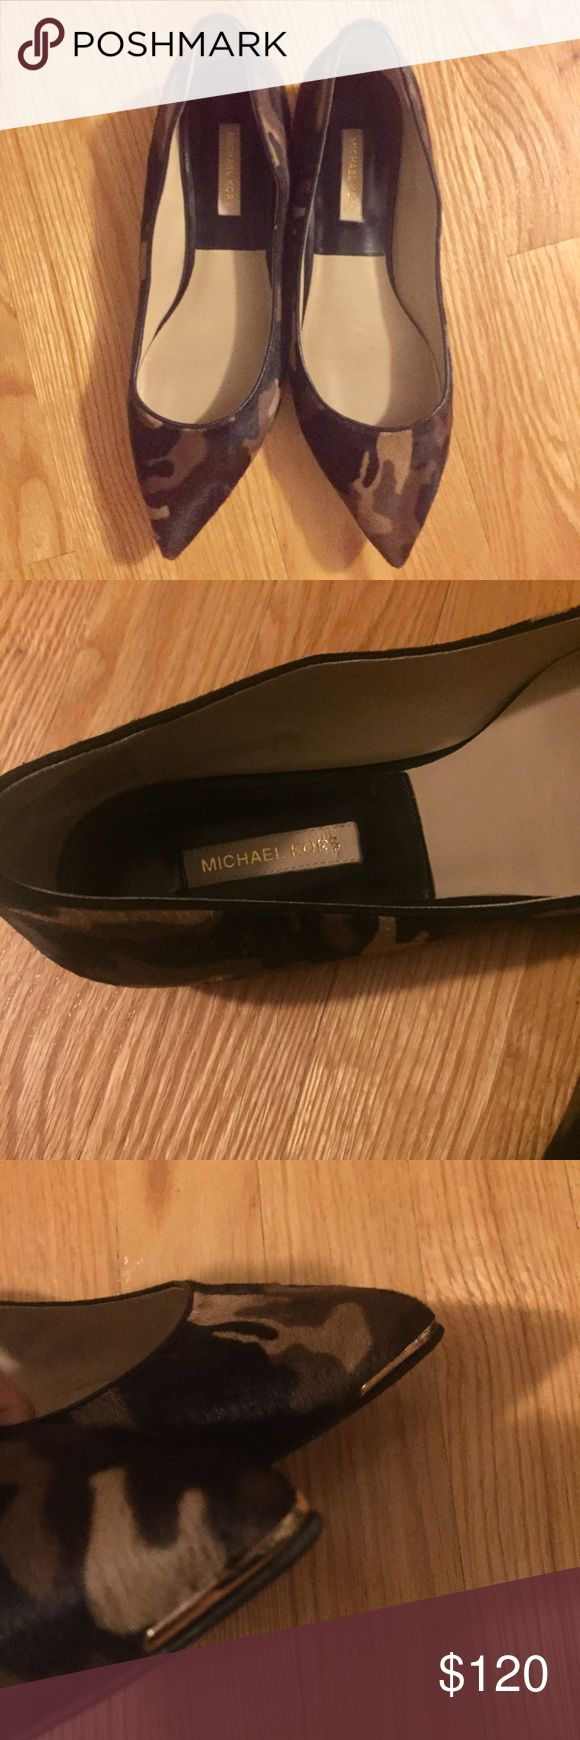 Michael Kors Camo Flats Excellent condition! Michael Kors Camo Calf Hair Flats Michael Kors Shoes Flats & Loafers